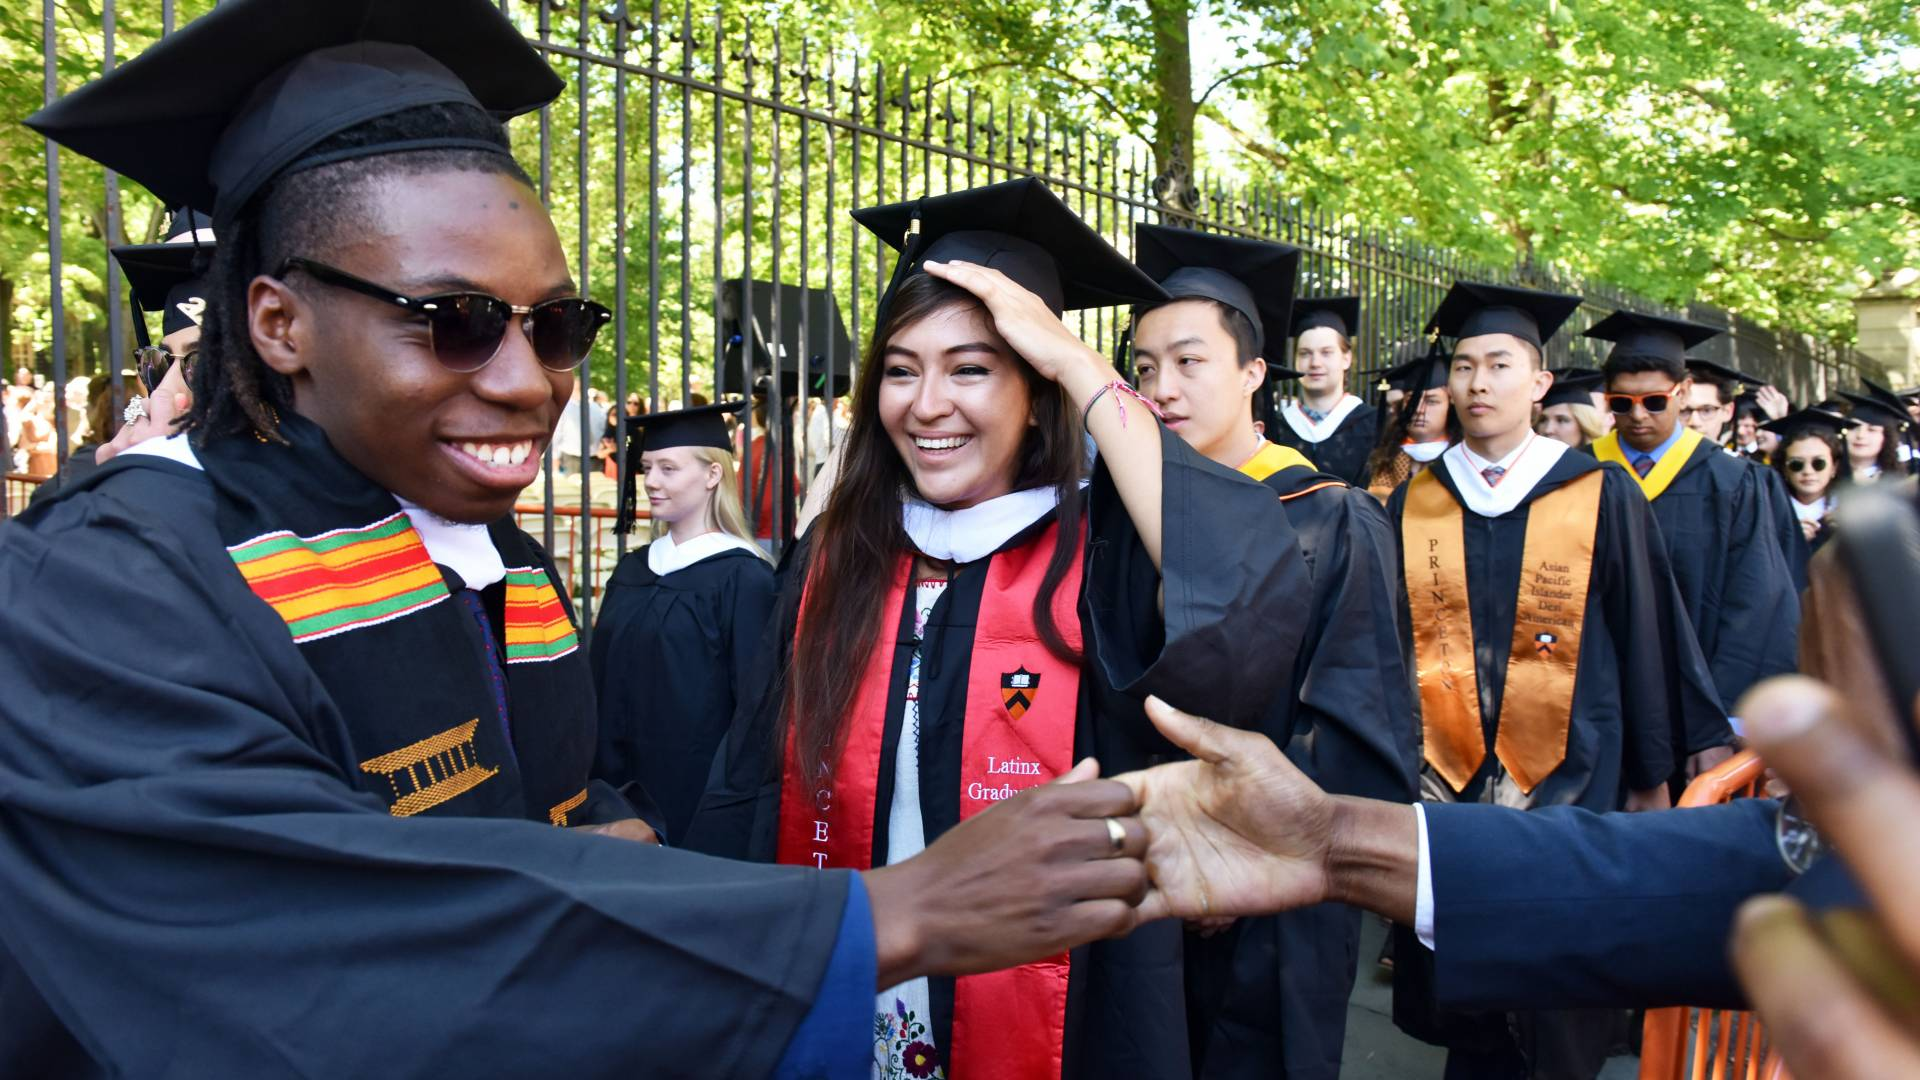 Student shaking hands with onlooker while processing toward campus for Commencement